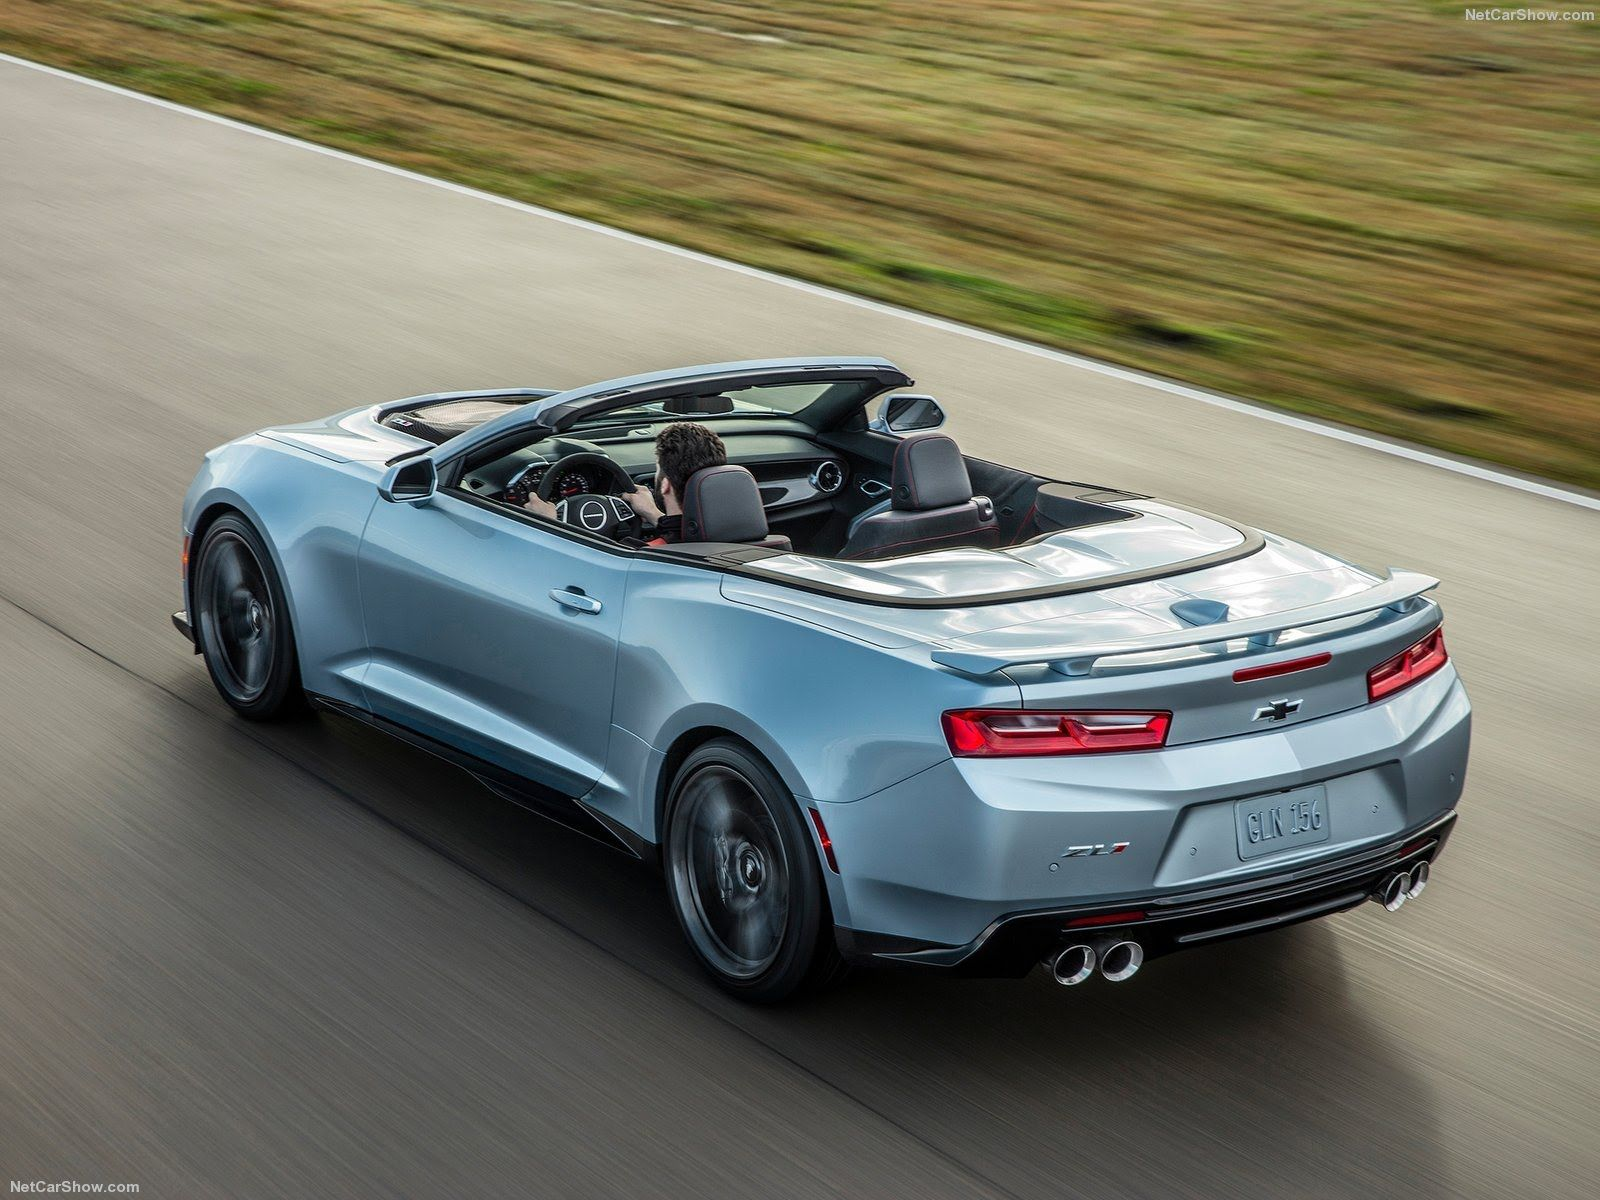 2017 Chevrolet Camaro Zl1 Convertible V 8 New 10 Sd Automatic